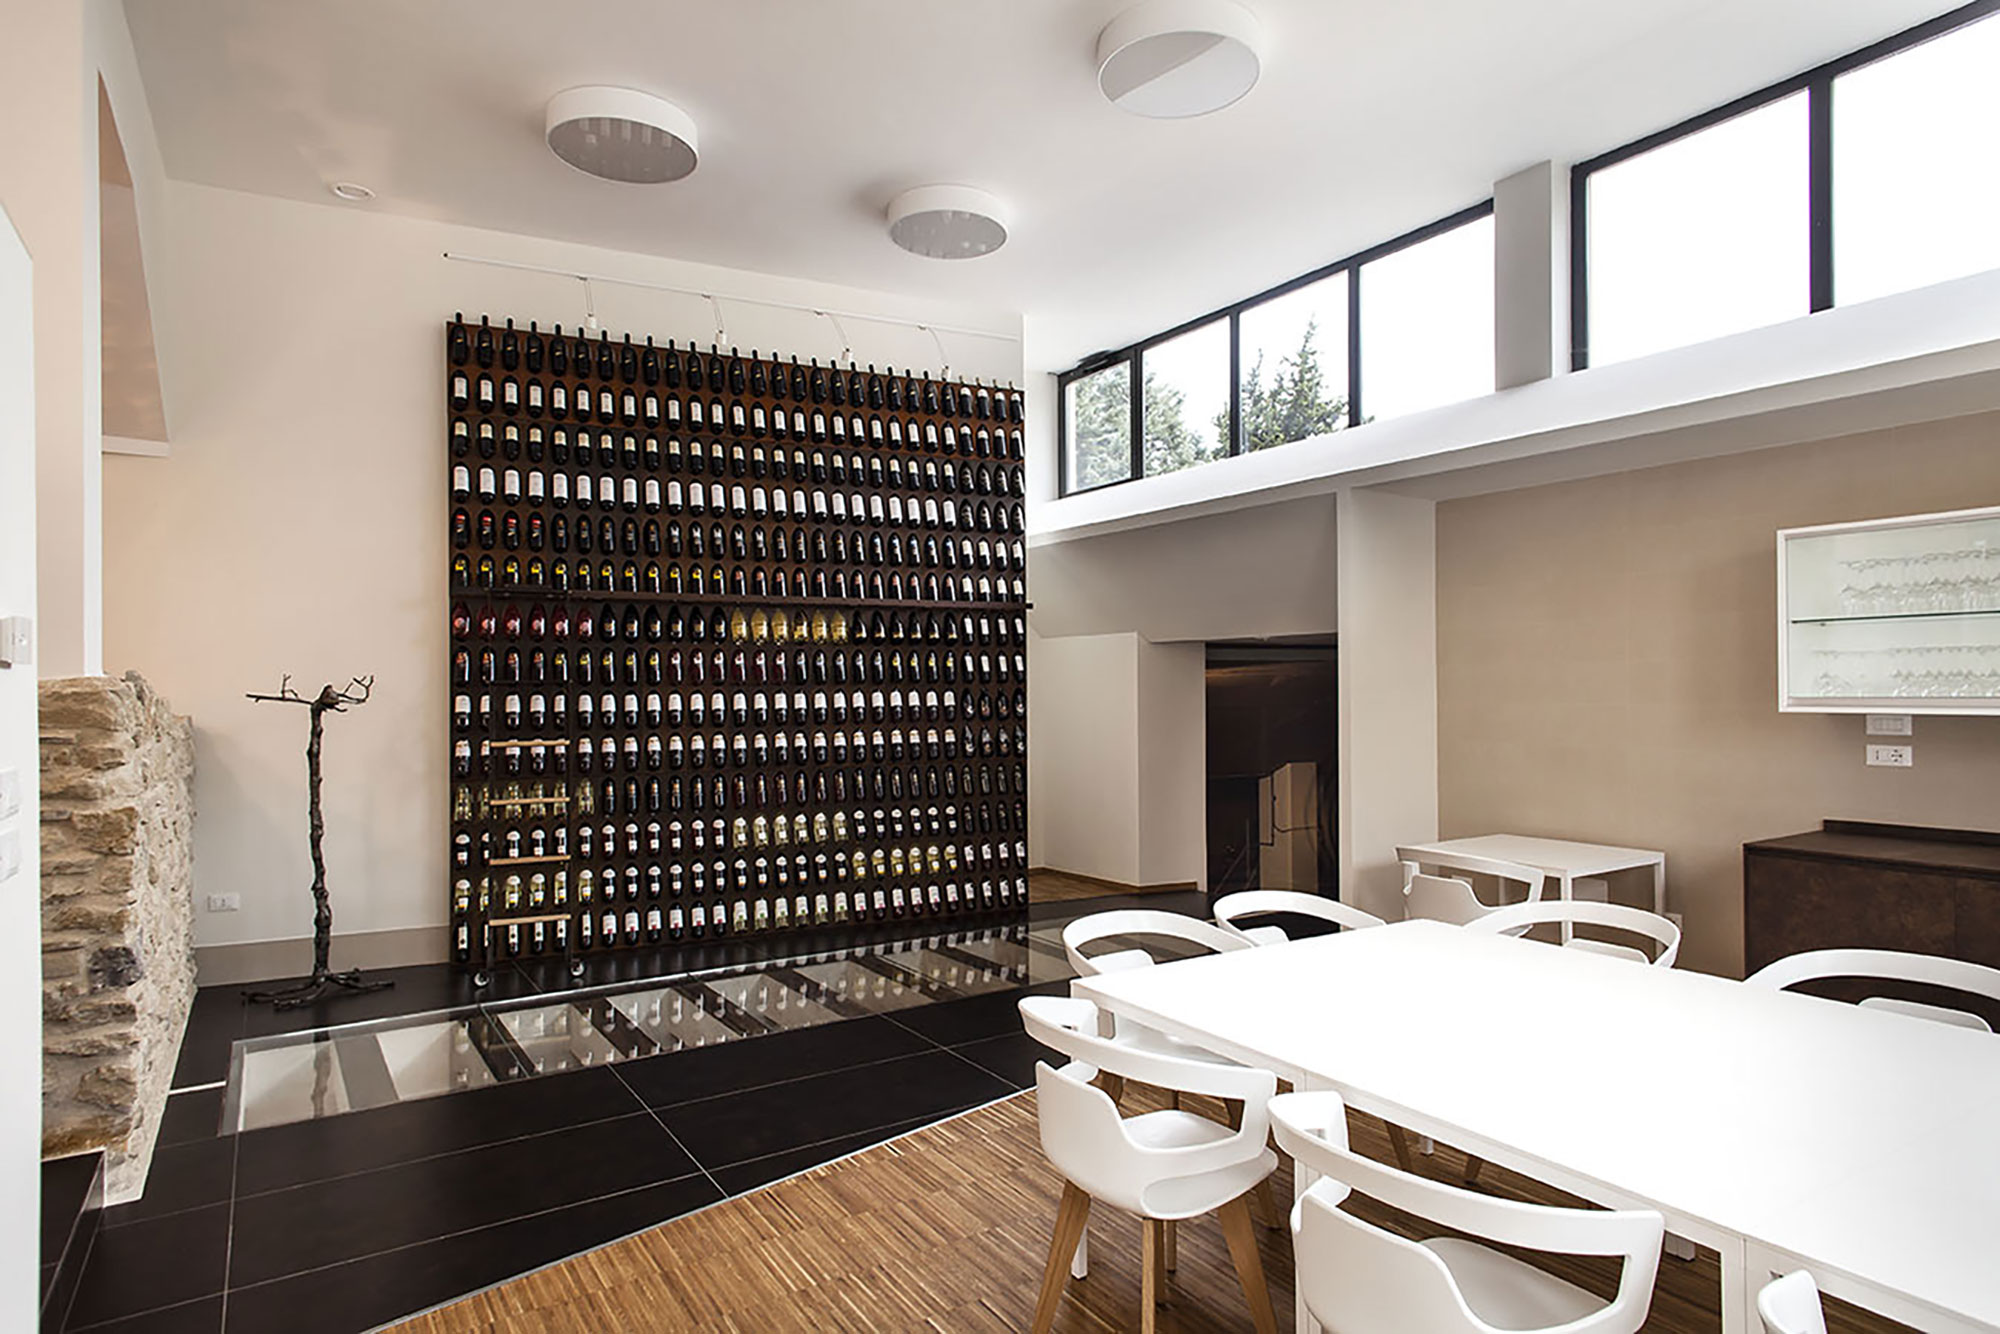 Showroom and tasting room ortona ch d 39 amico design for D amico arredamenti casoli